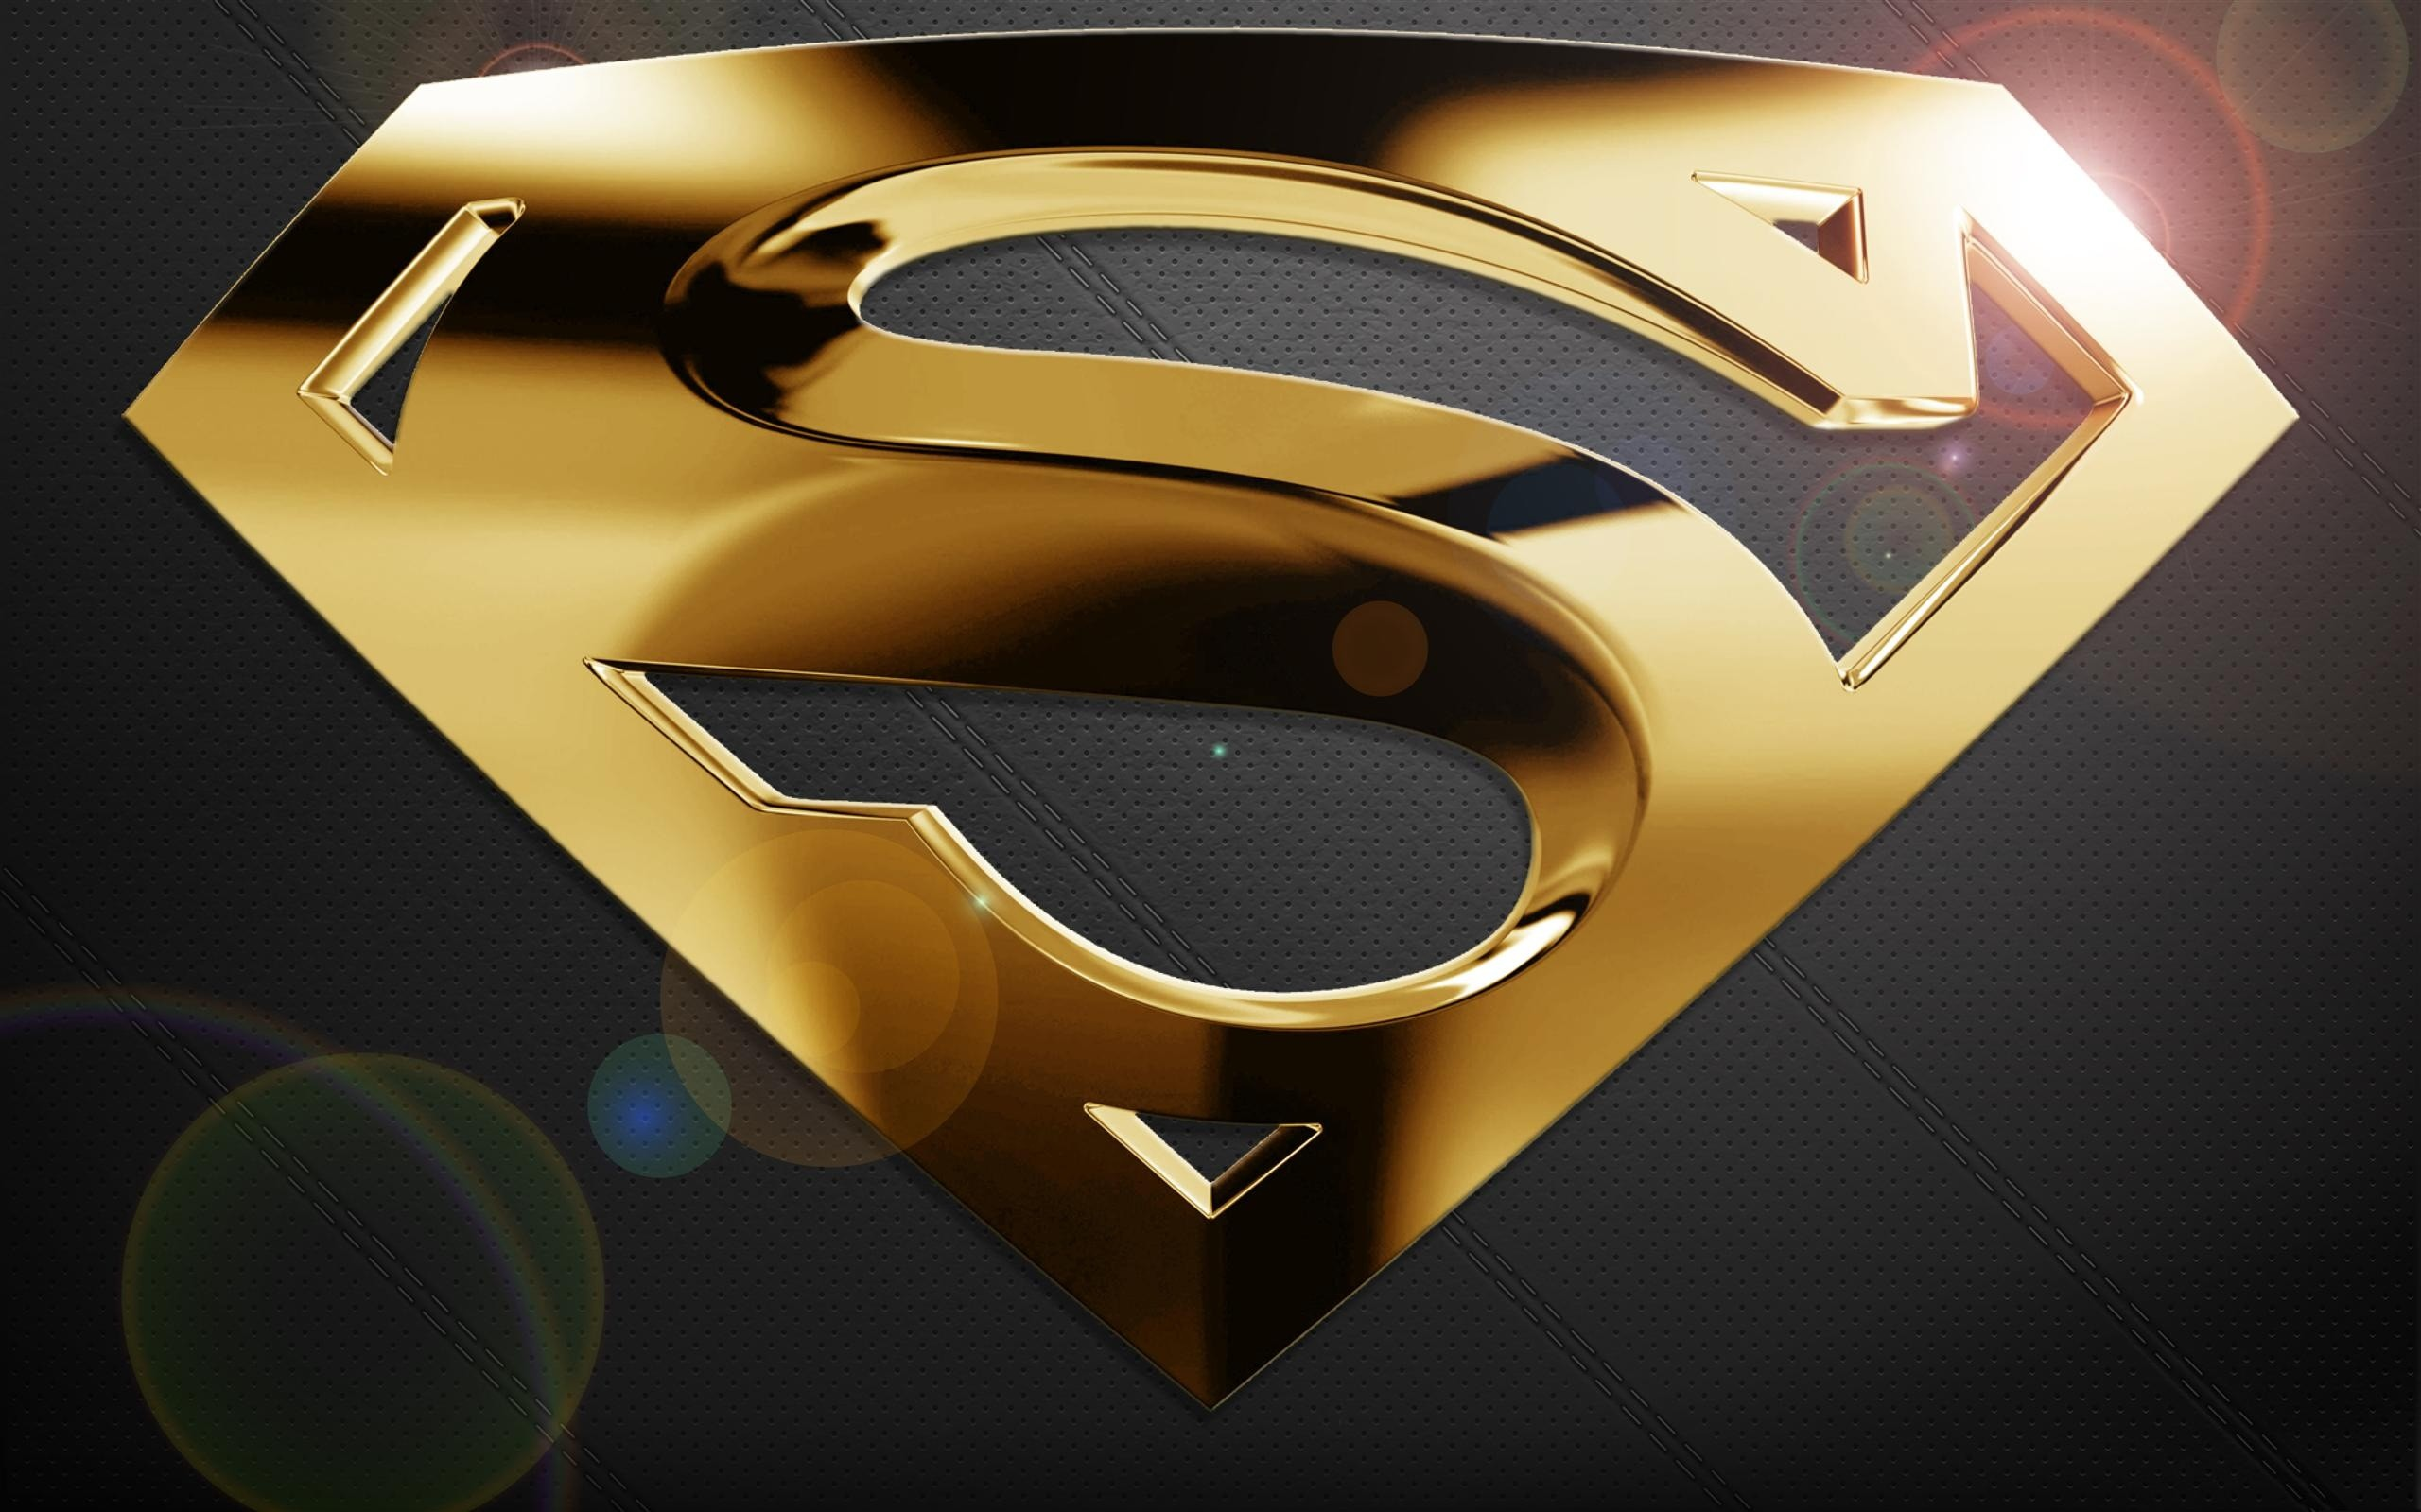 Res: 2560x1599, 3d Superman Wallpapers Backgrounds Images 93231